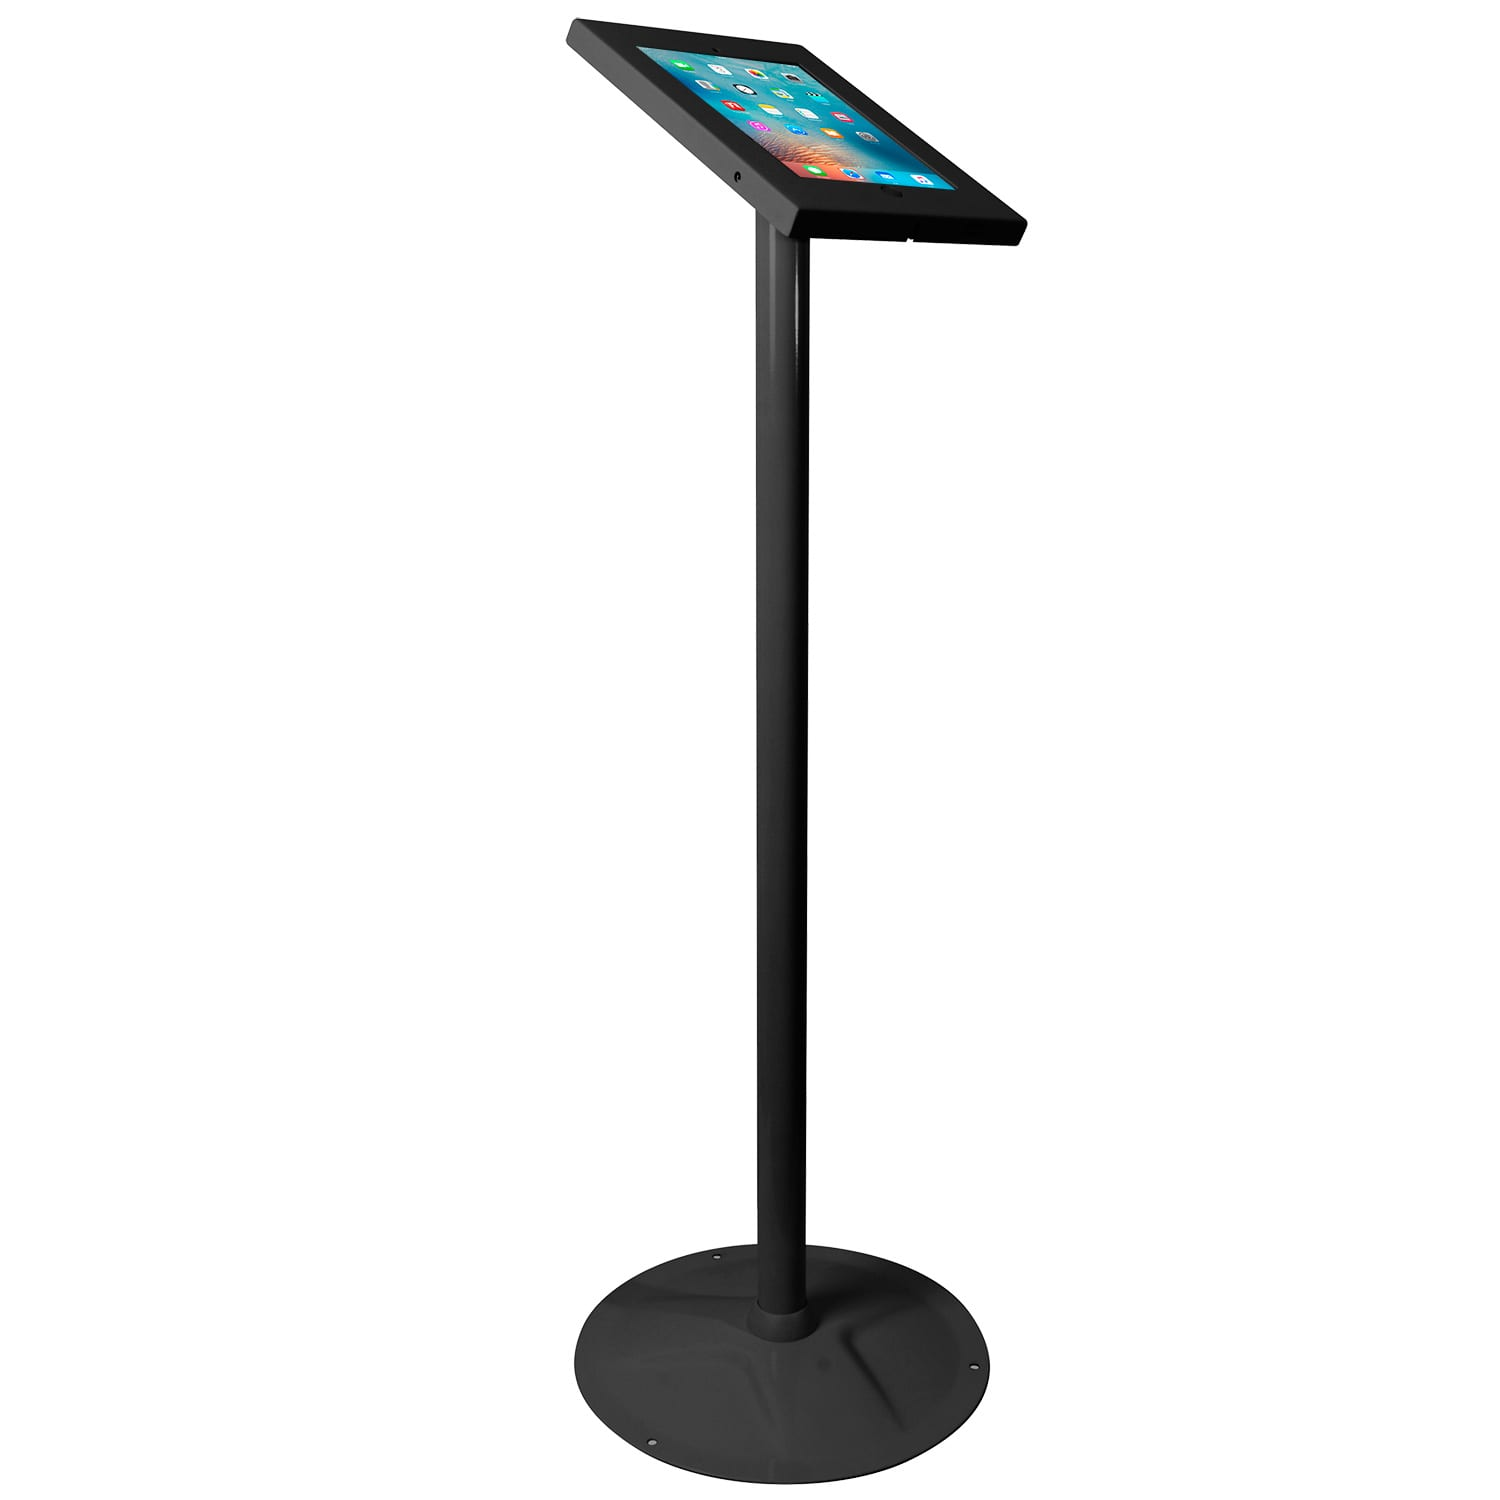 Brateck PAD12-02A Anti-theft iPad Kiosk Floor Stand Black